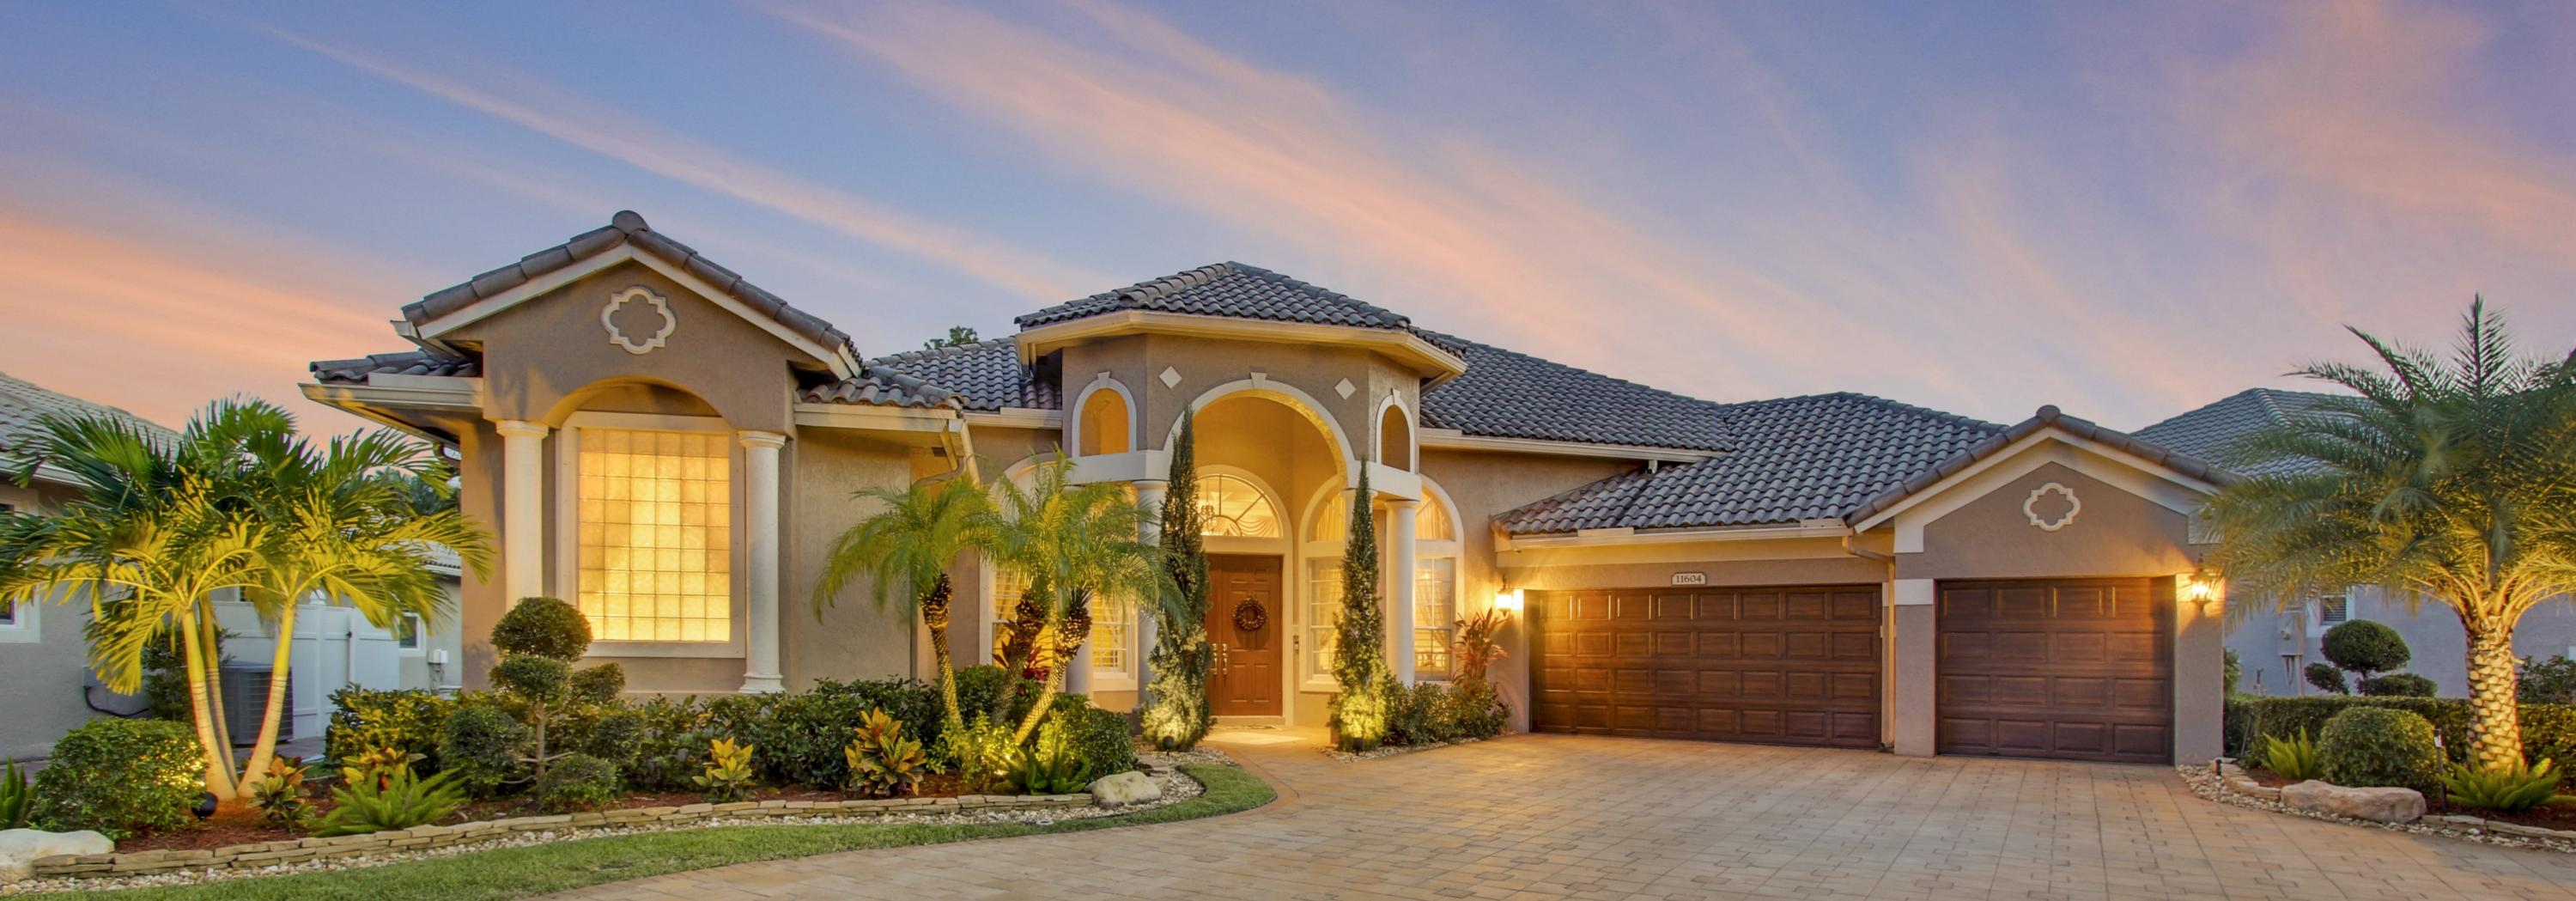 Crystal Cove Estates